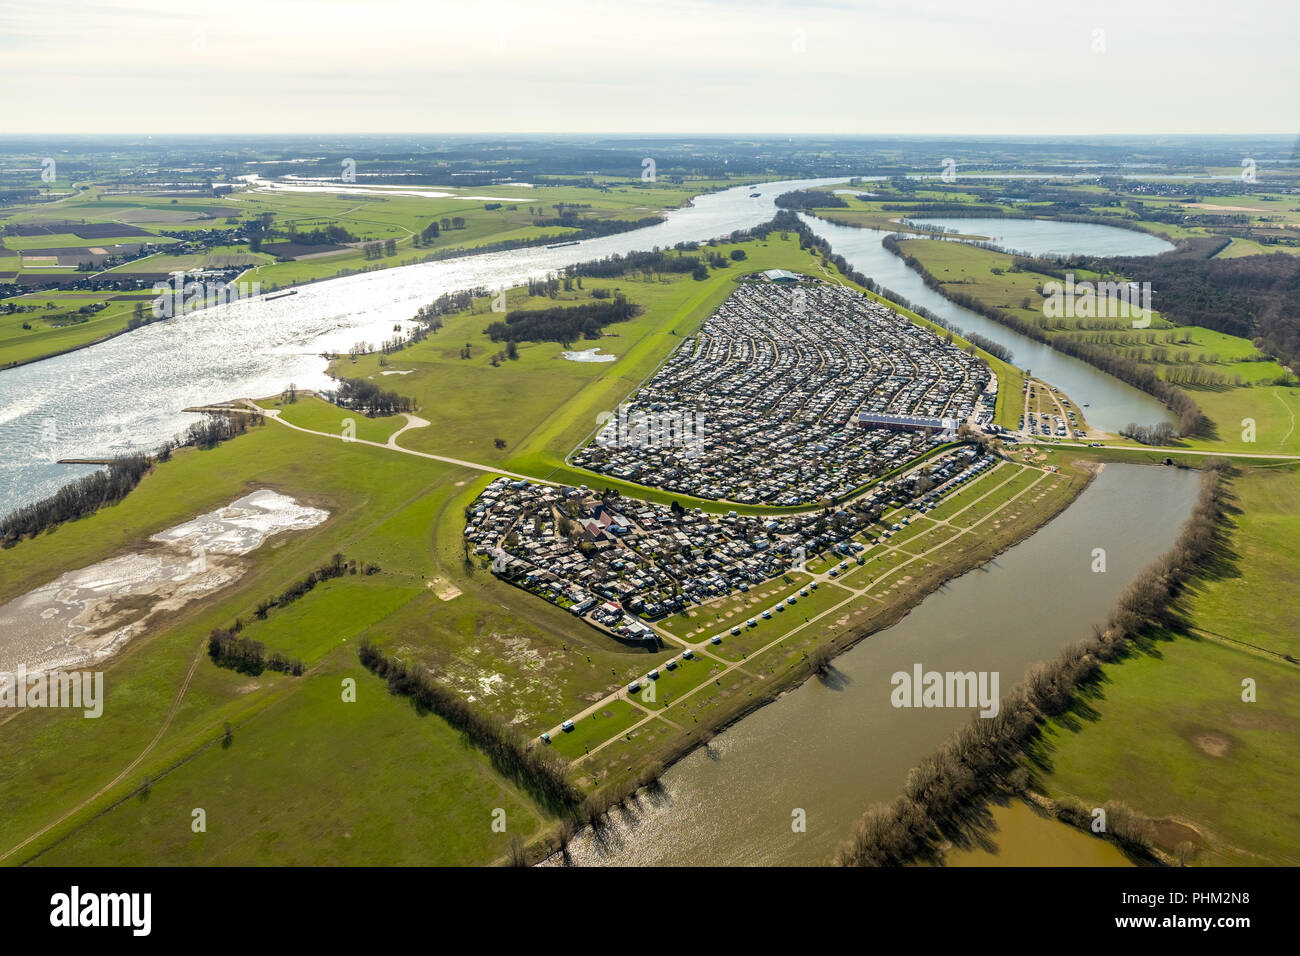 Campingplatz Grav-insel GmbH & Co KG, 2000 pitches and Germany's largest campsite in Wesel in NRW. Wesel, Rhineland, Hanseatic City, Lower Rhine, Nort - Stock Image